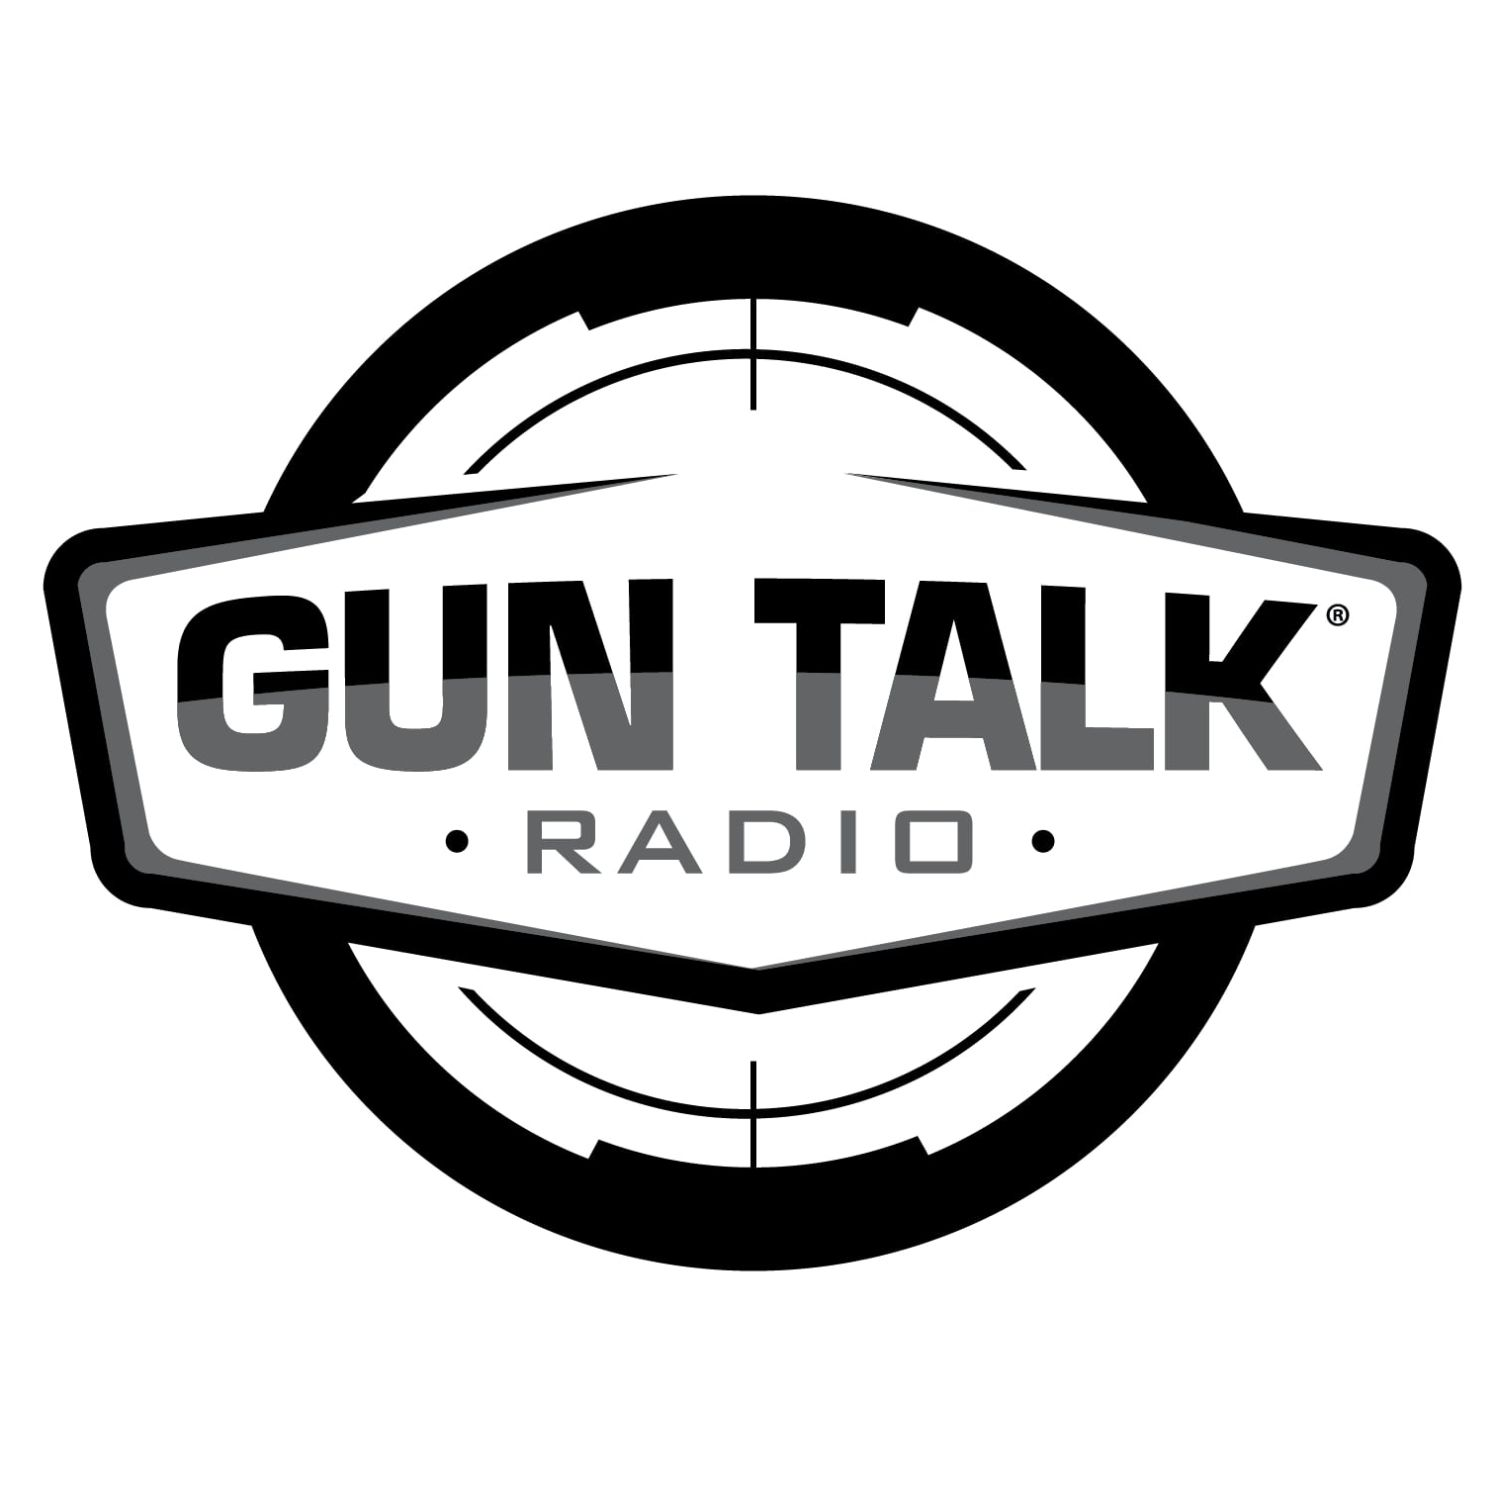 Artwork for Guntalk 2006-12-31 Part B